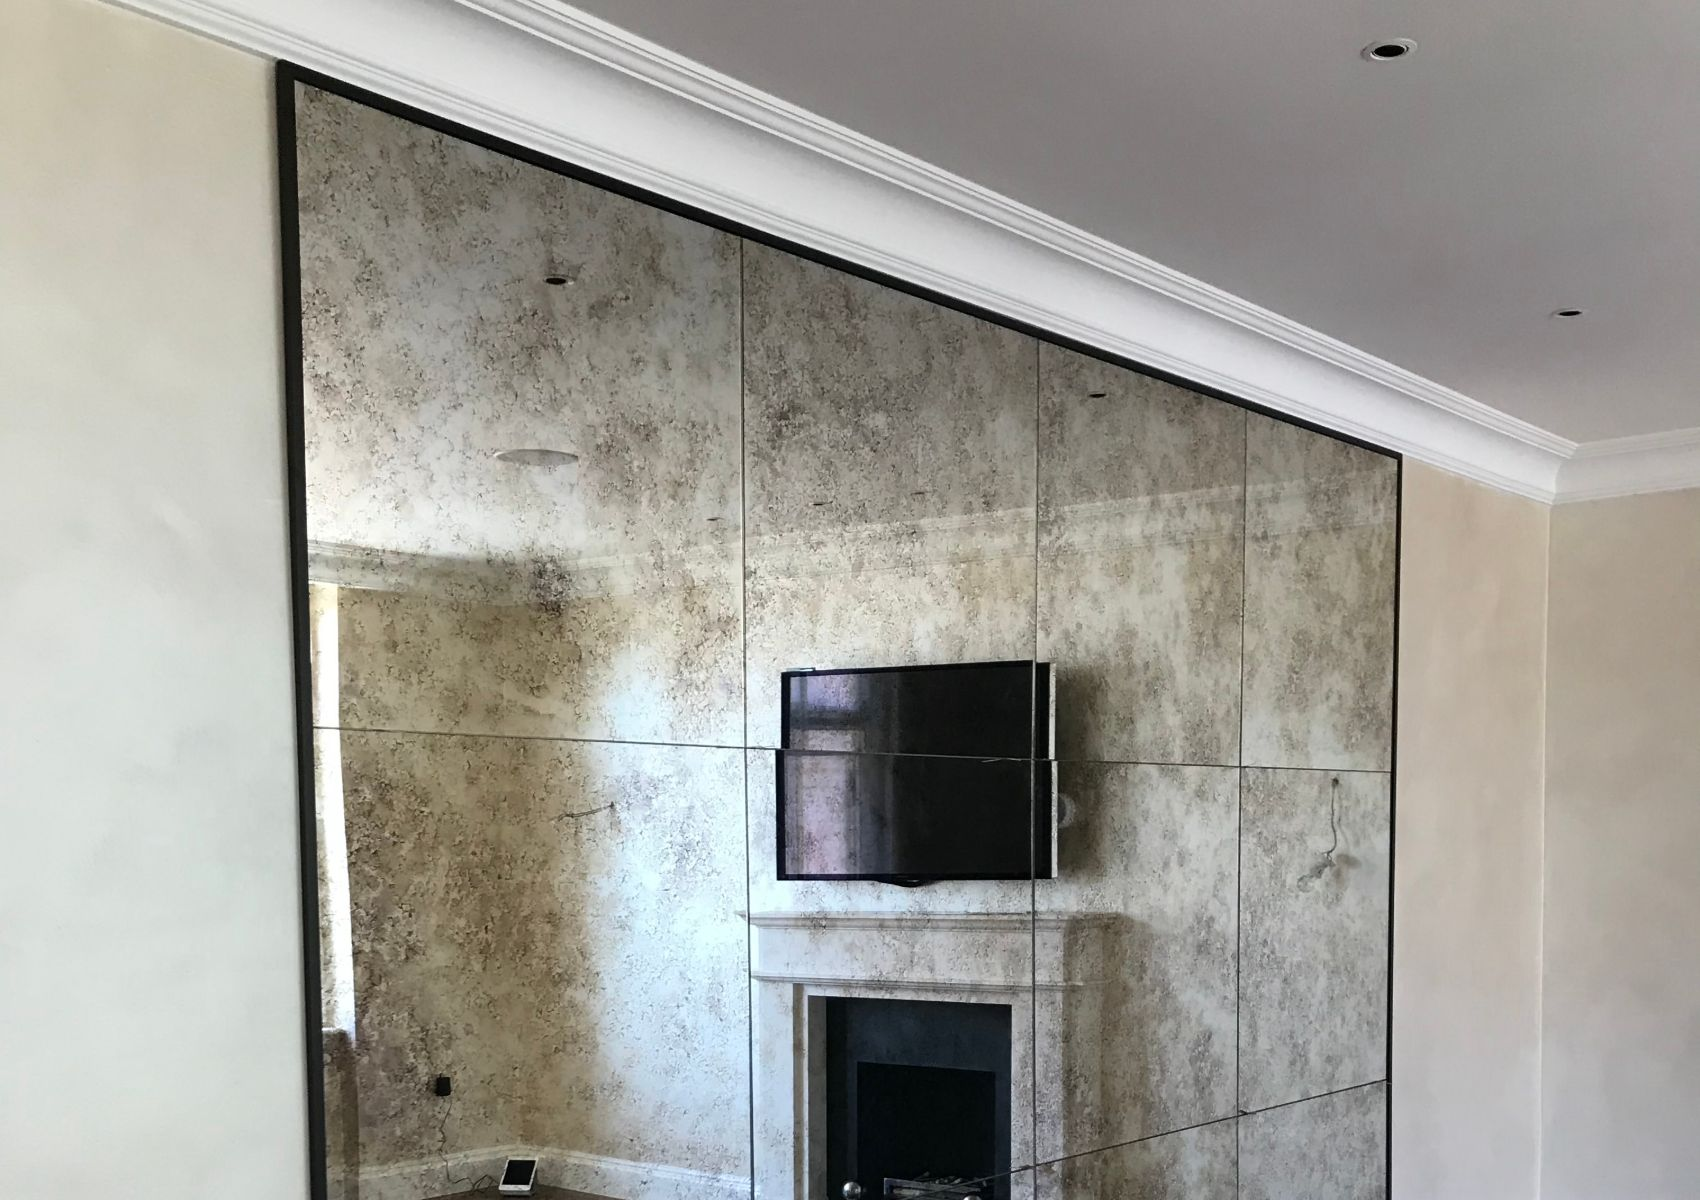 Milano style feature wall in bedroom